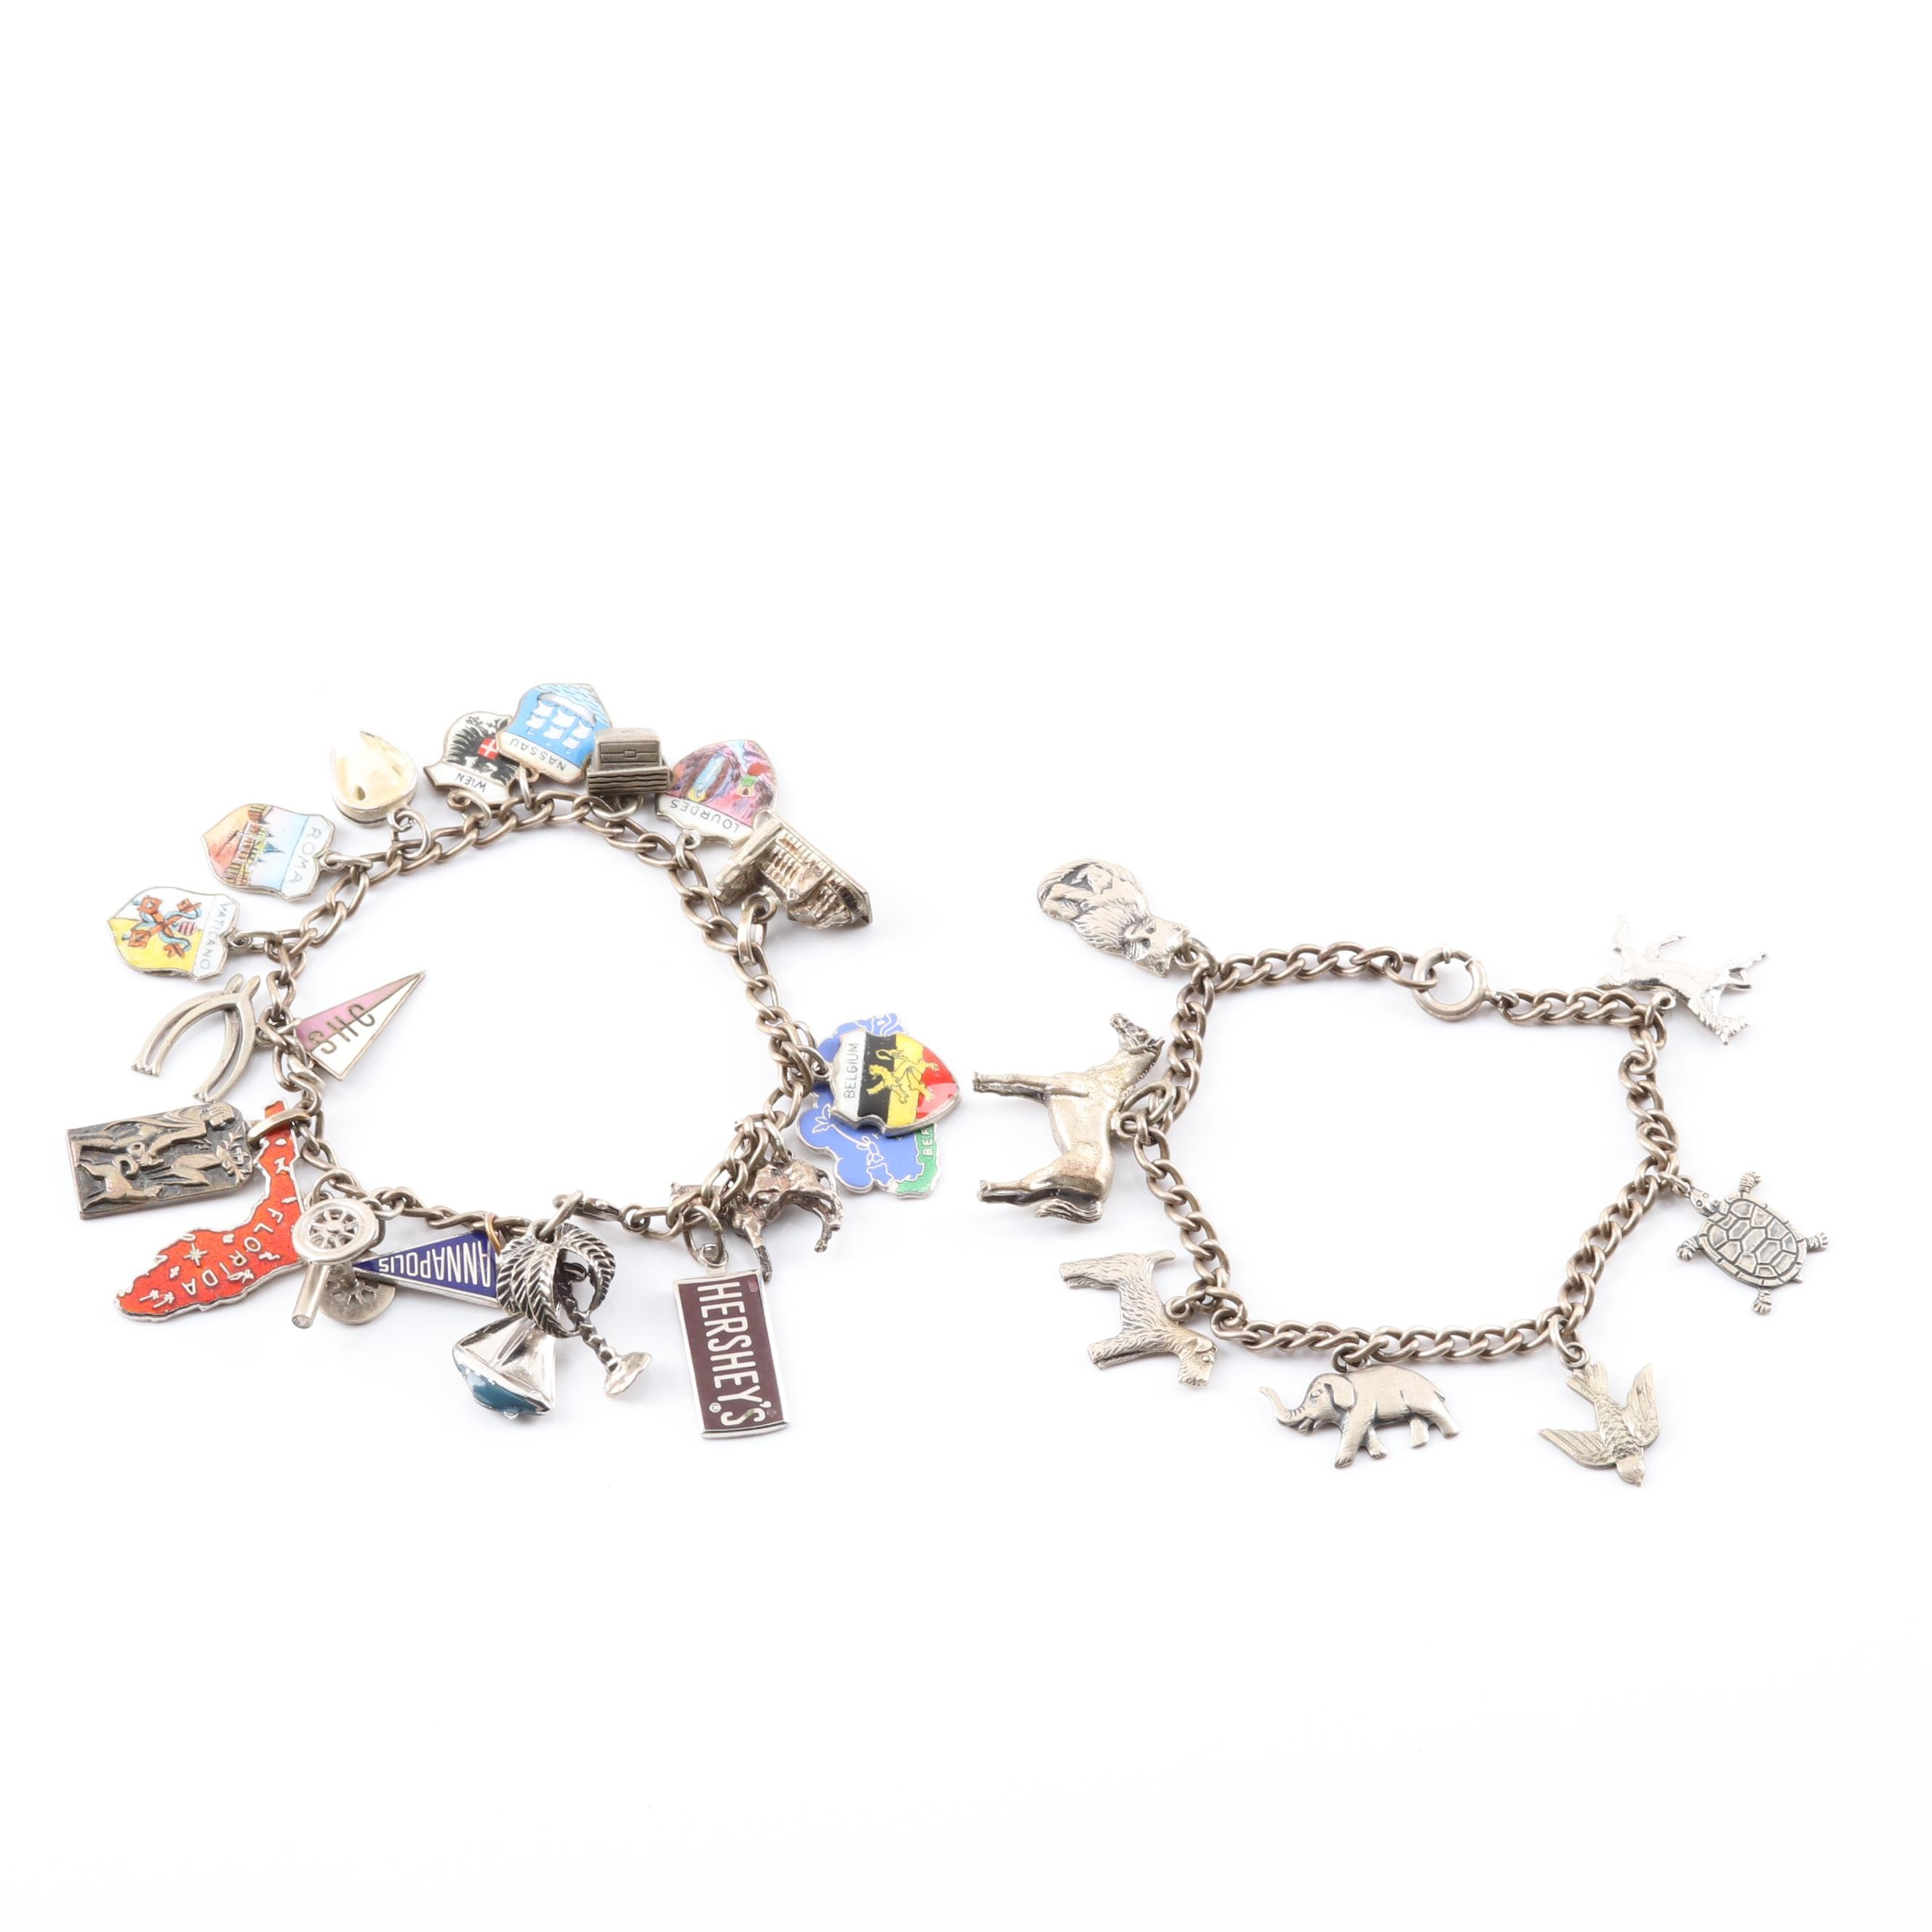 Sterling Silver and Silver Plated Charm Bracelets